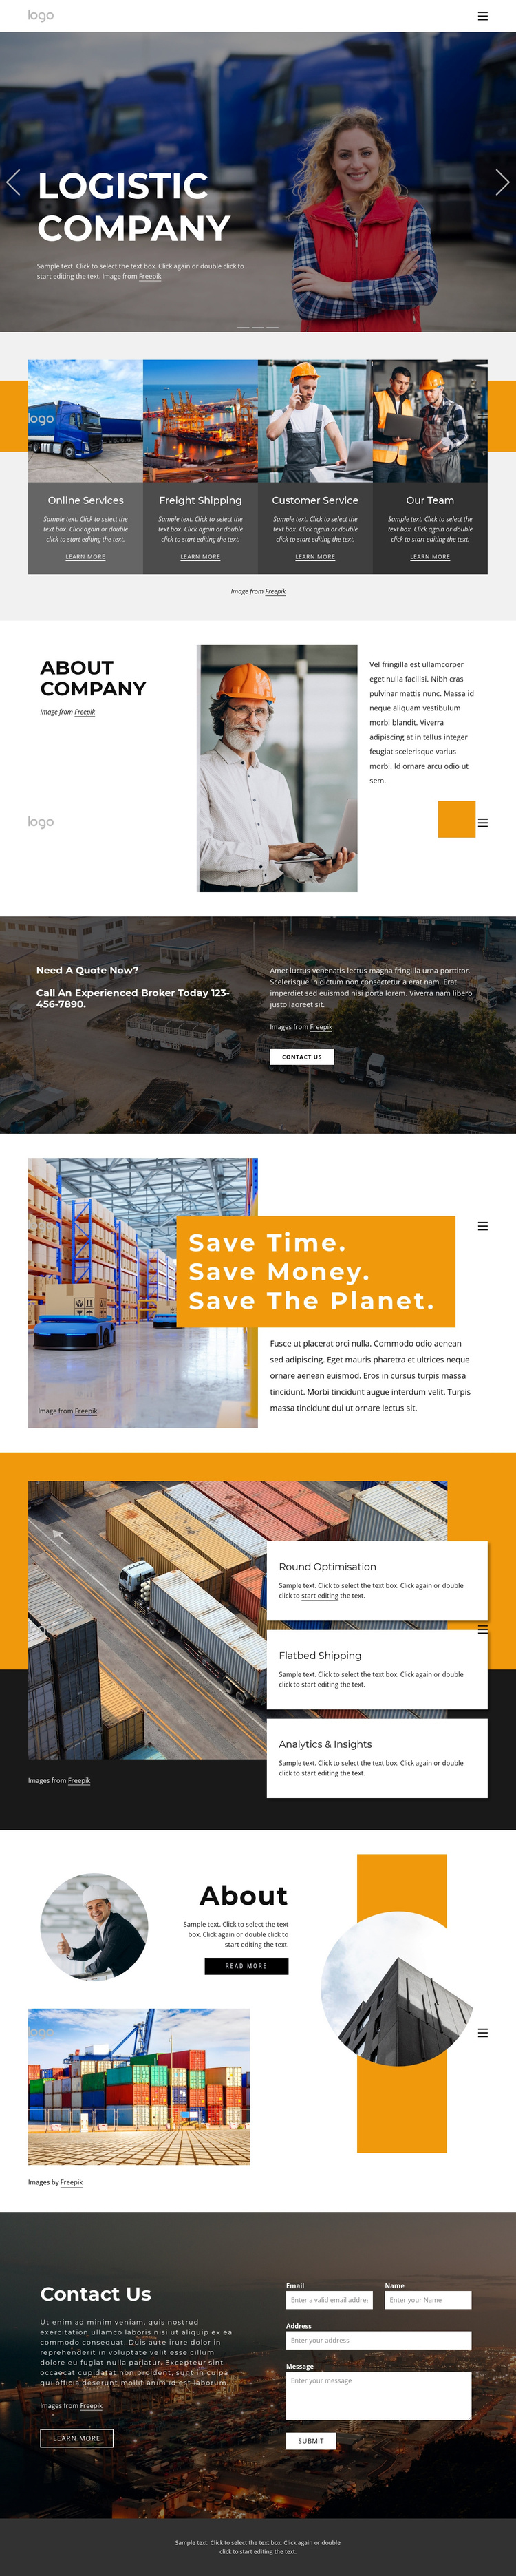 Shipping services and logistics Joomla Template